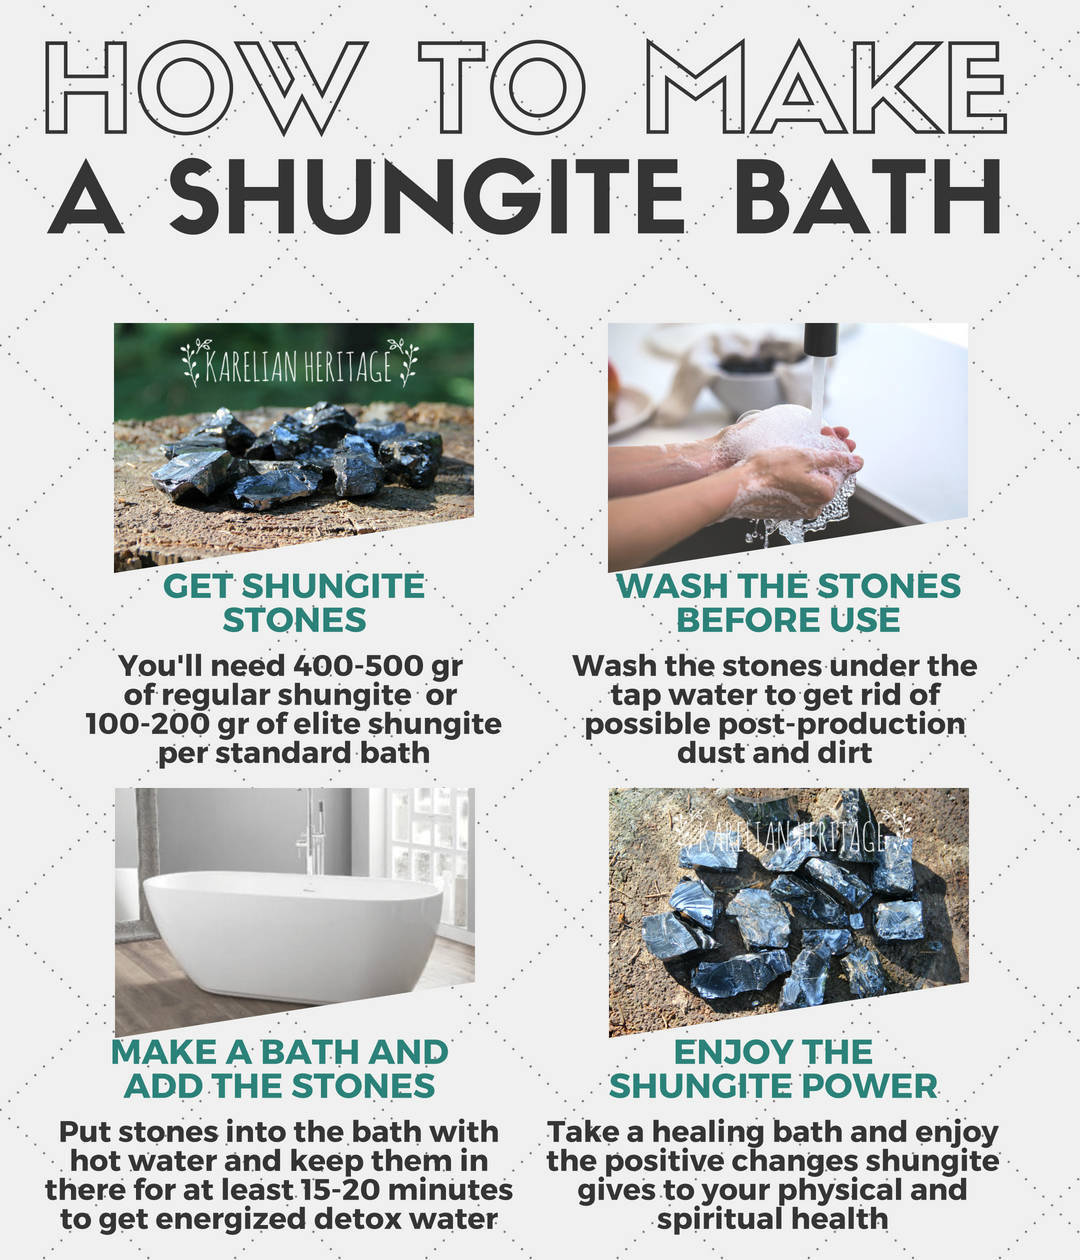 healing-shungite-bath-how-to-make-it